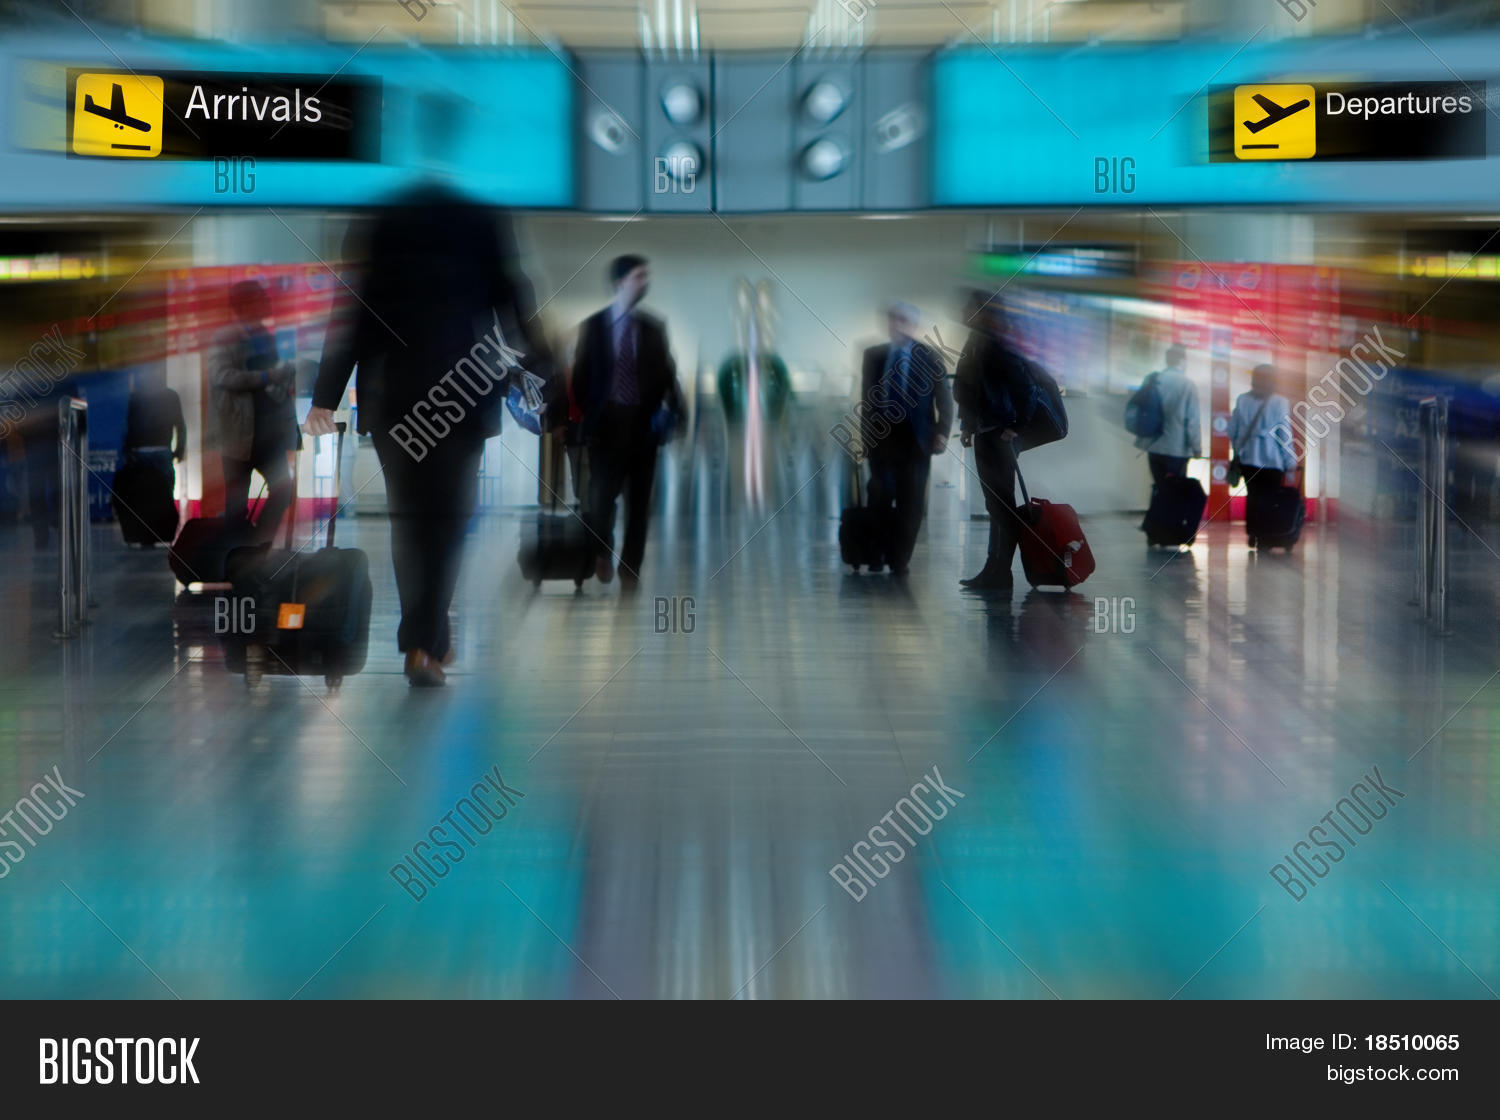 airline,airplane,airport,arrival,boarding,business,departure,flight,glass,lounge,men,passenger,people,reflection,sign,silhouette,travel,travelers,trip,vacations,waiting,walking,woman